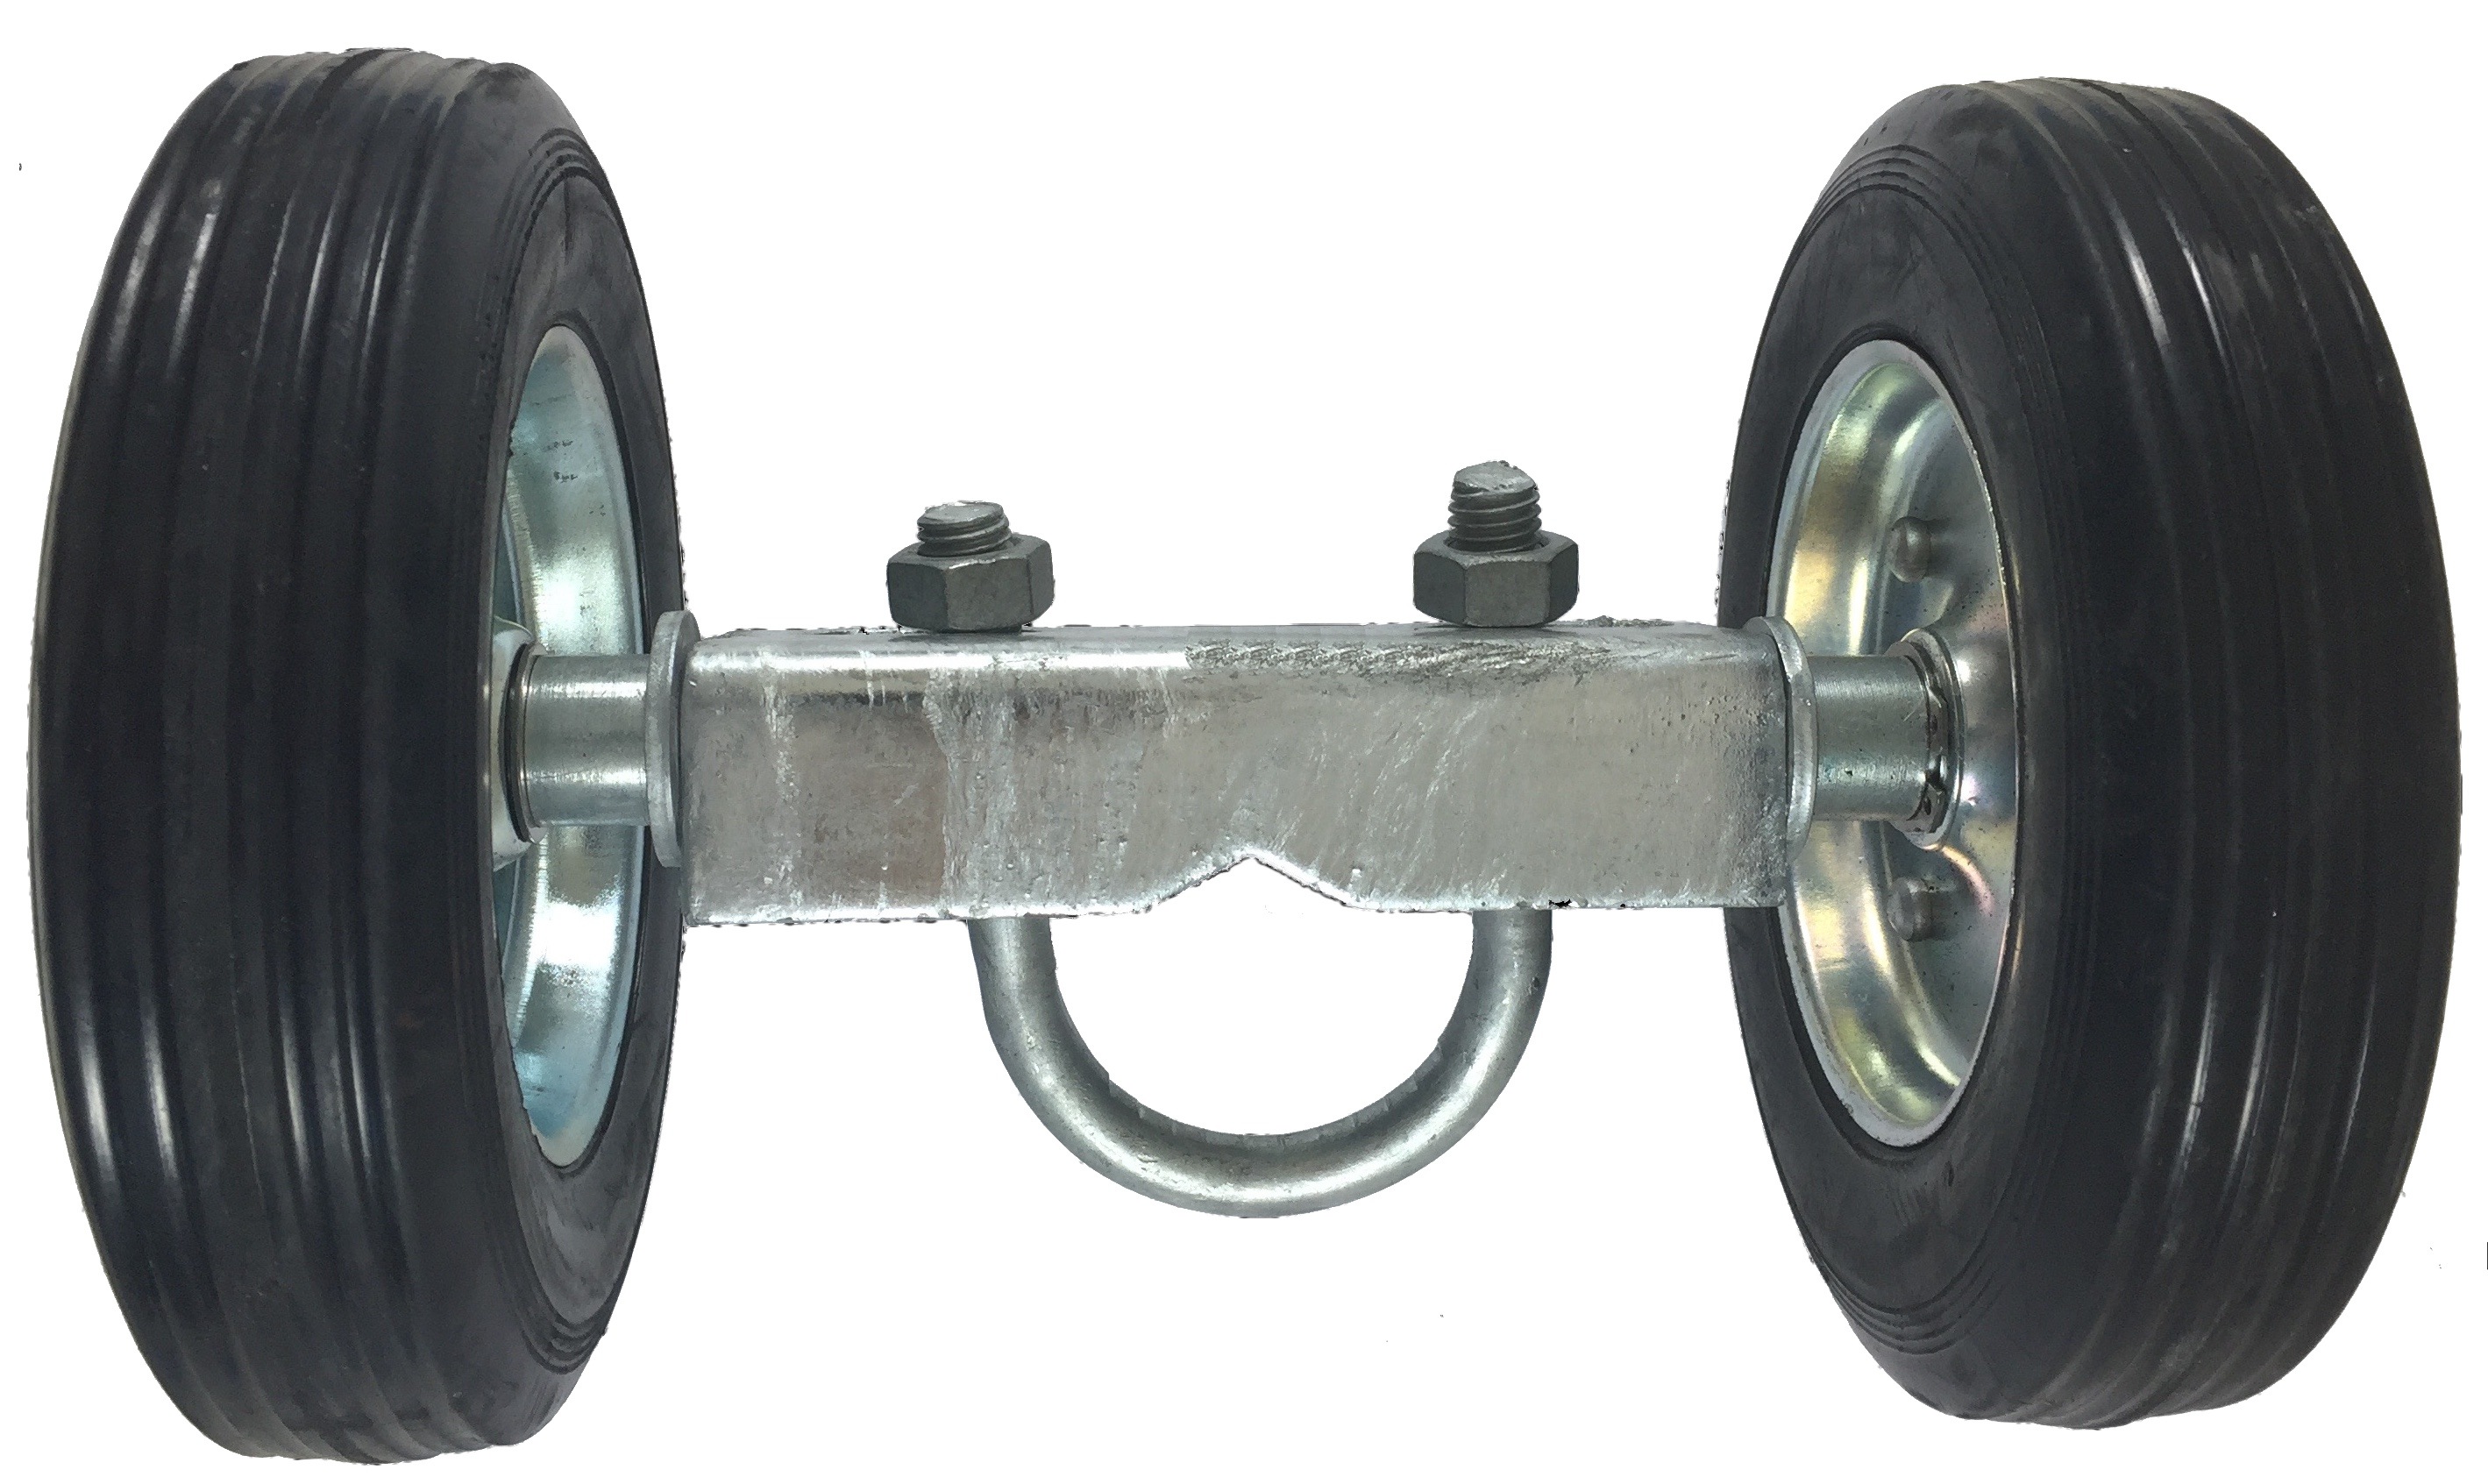 """ROLLING GATE 6"""" WHEEL CARRIER: for Chain Link Fence Rolling Gates Rut Runner 2 Rubber Wheels (axle is... by Rolling%2FSliding Gate Hardware"""